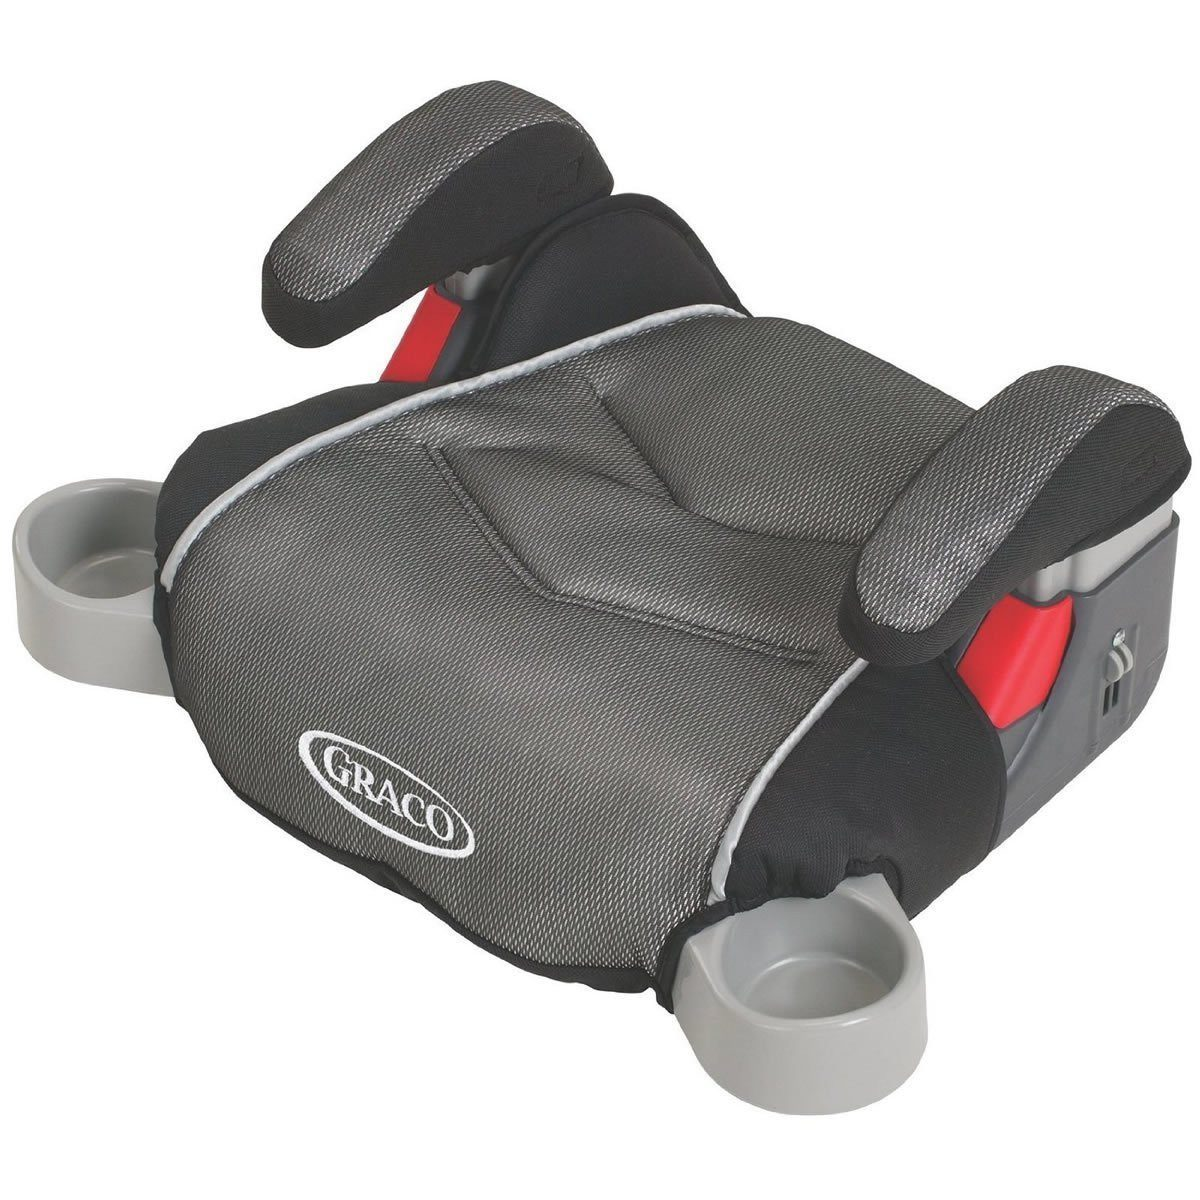 Car Seat Booster Kmart